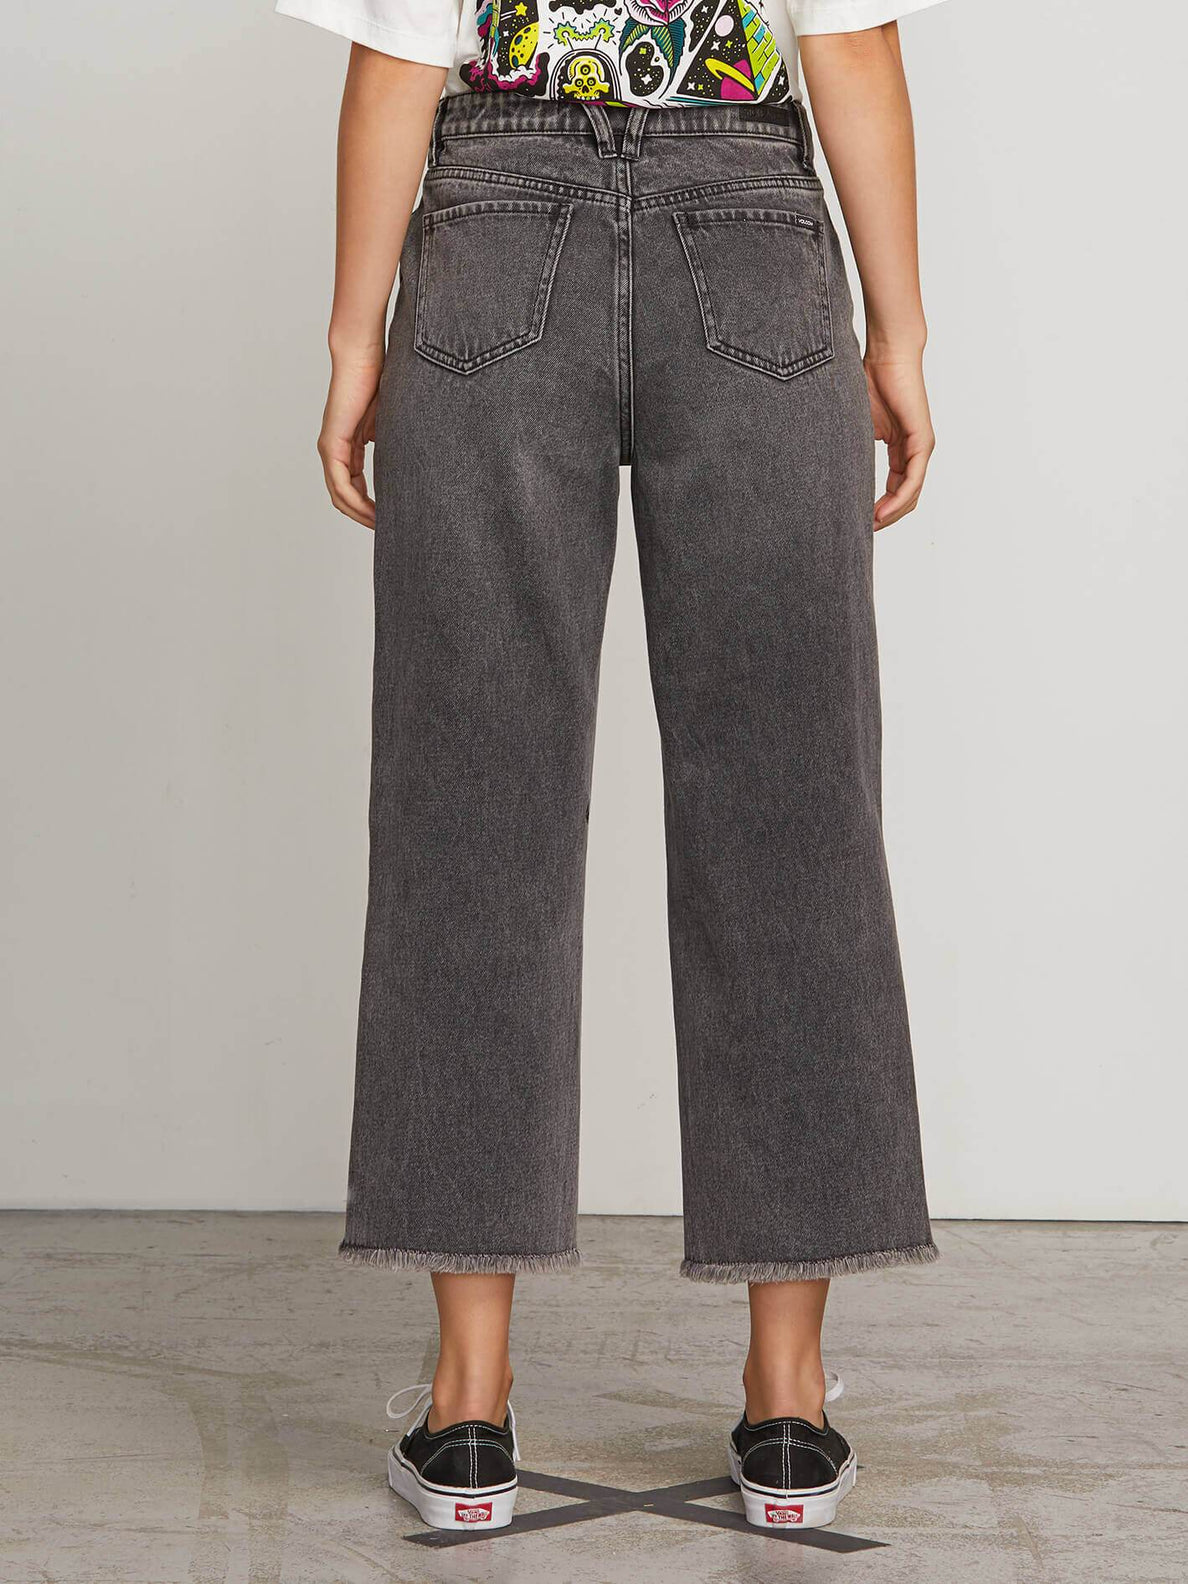 High & Dry Crop Jeans In Smoke, Back View